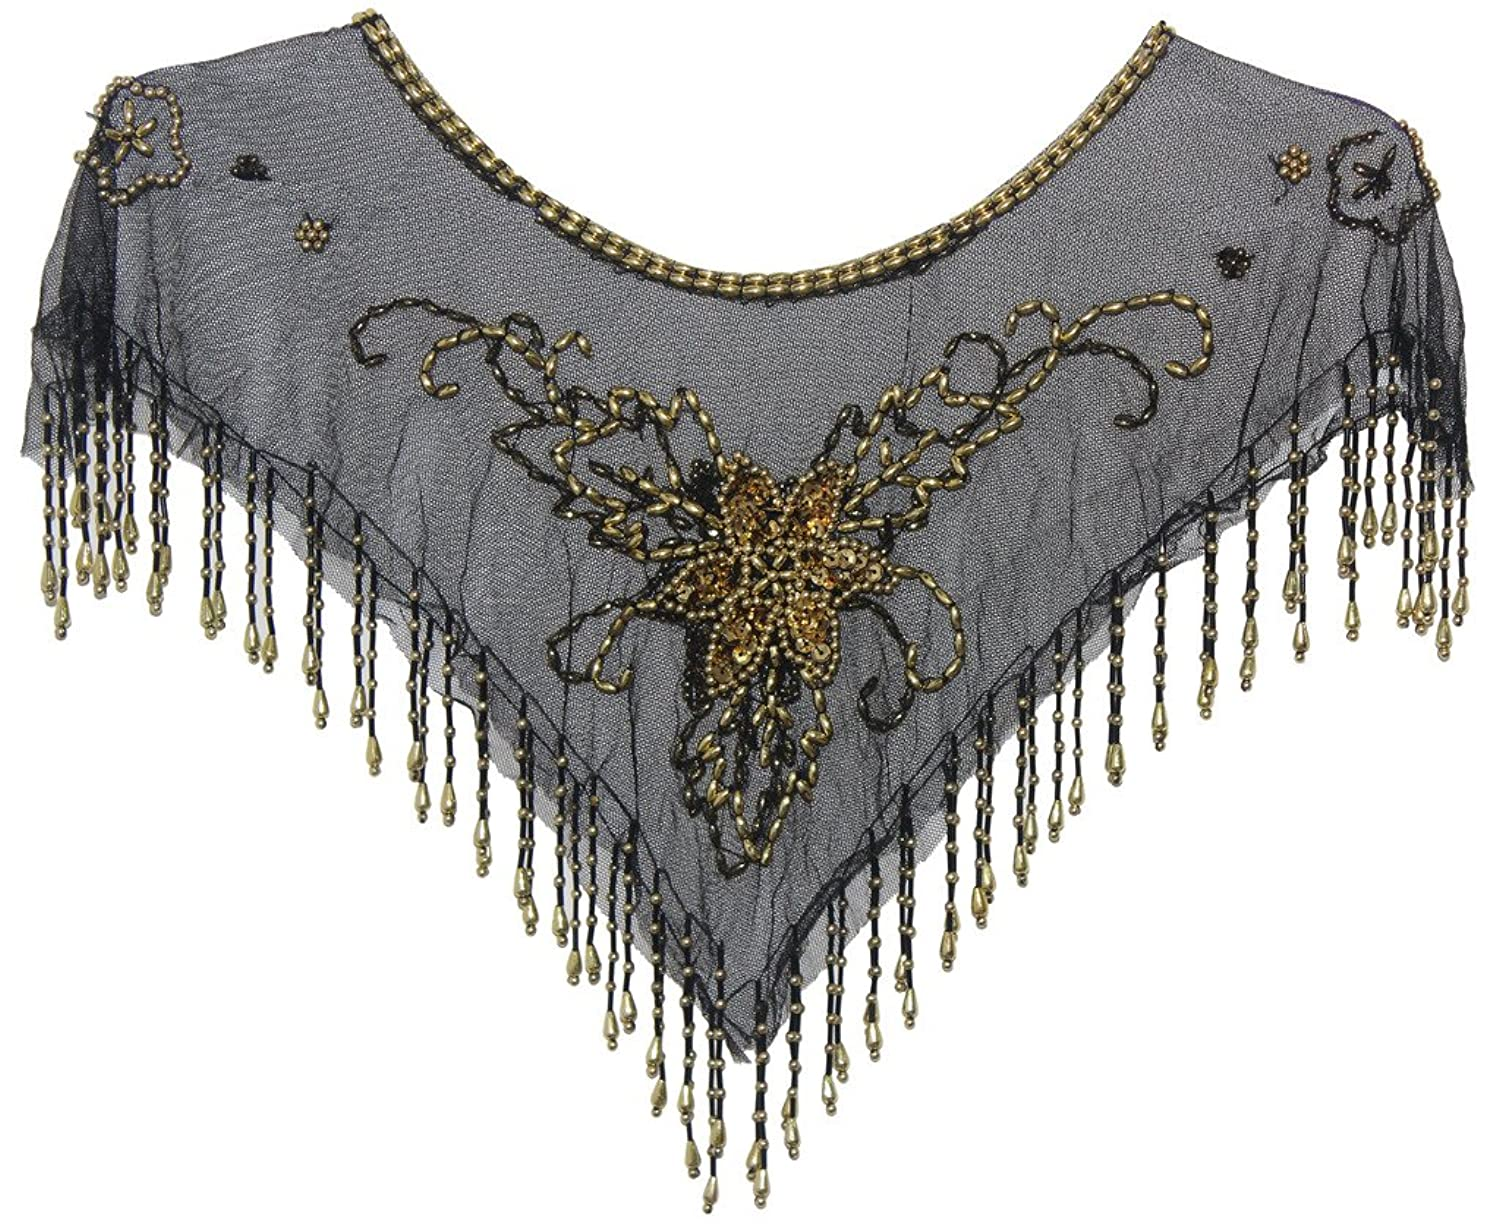 1920s Style Shawls, Wraps, Scarves  Beaded Mesh Shawl Dance Poncho Capelet $15.99 AT vintagedancer.com